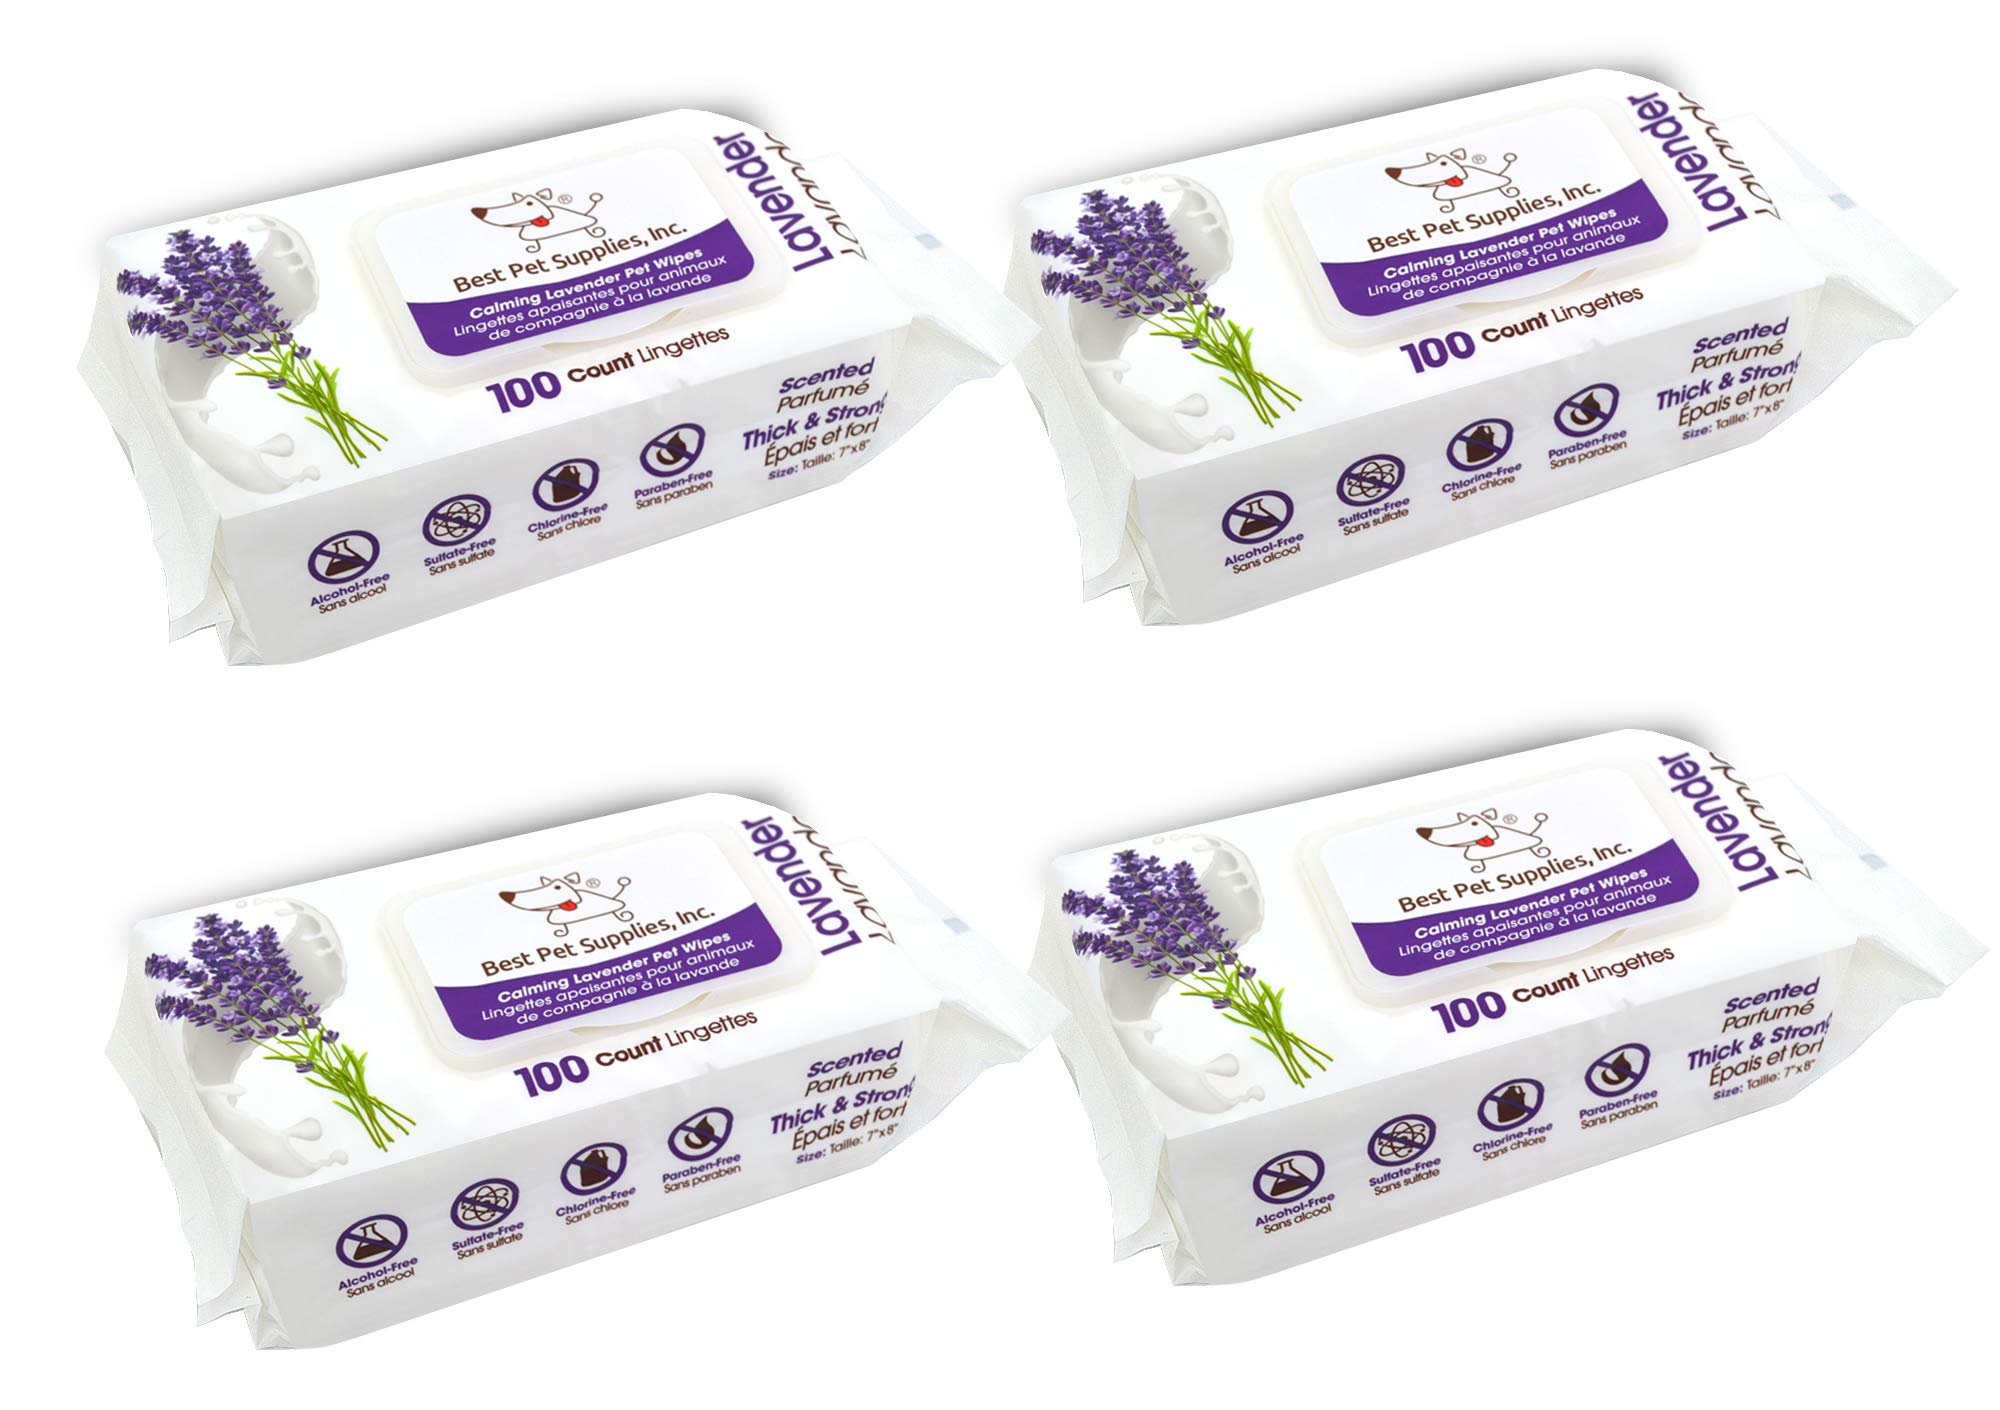 Lavender-Scented Calming Pet Wipes for Dogs & Cats - Extra Soft & Strong Grooming Wipes with Gentle Plant-Derived Formula - by Best Pet Supplies